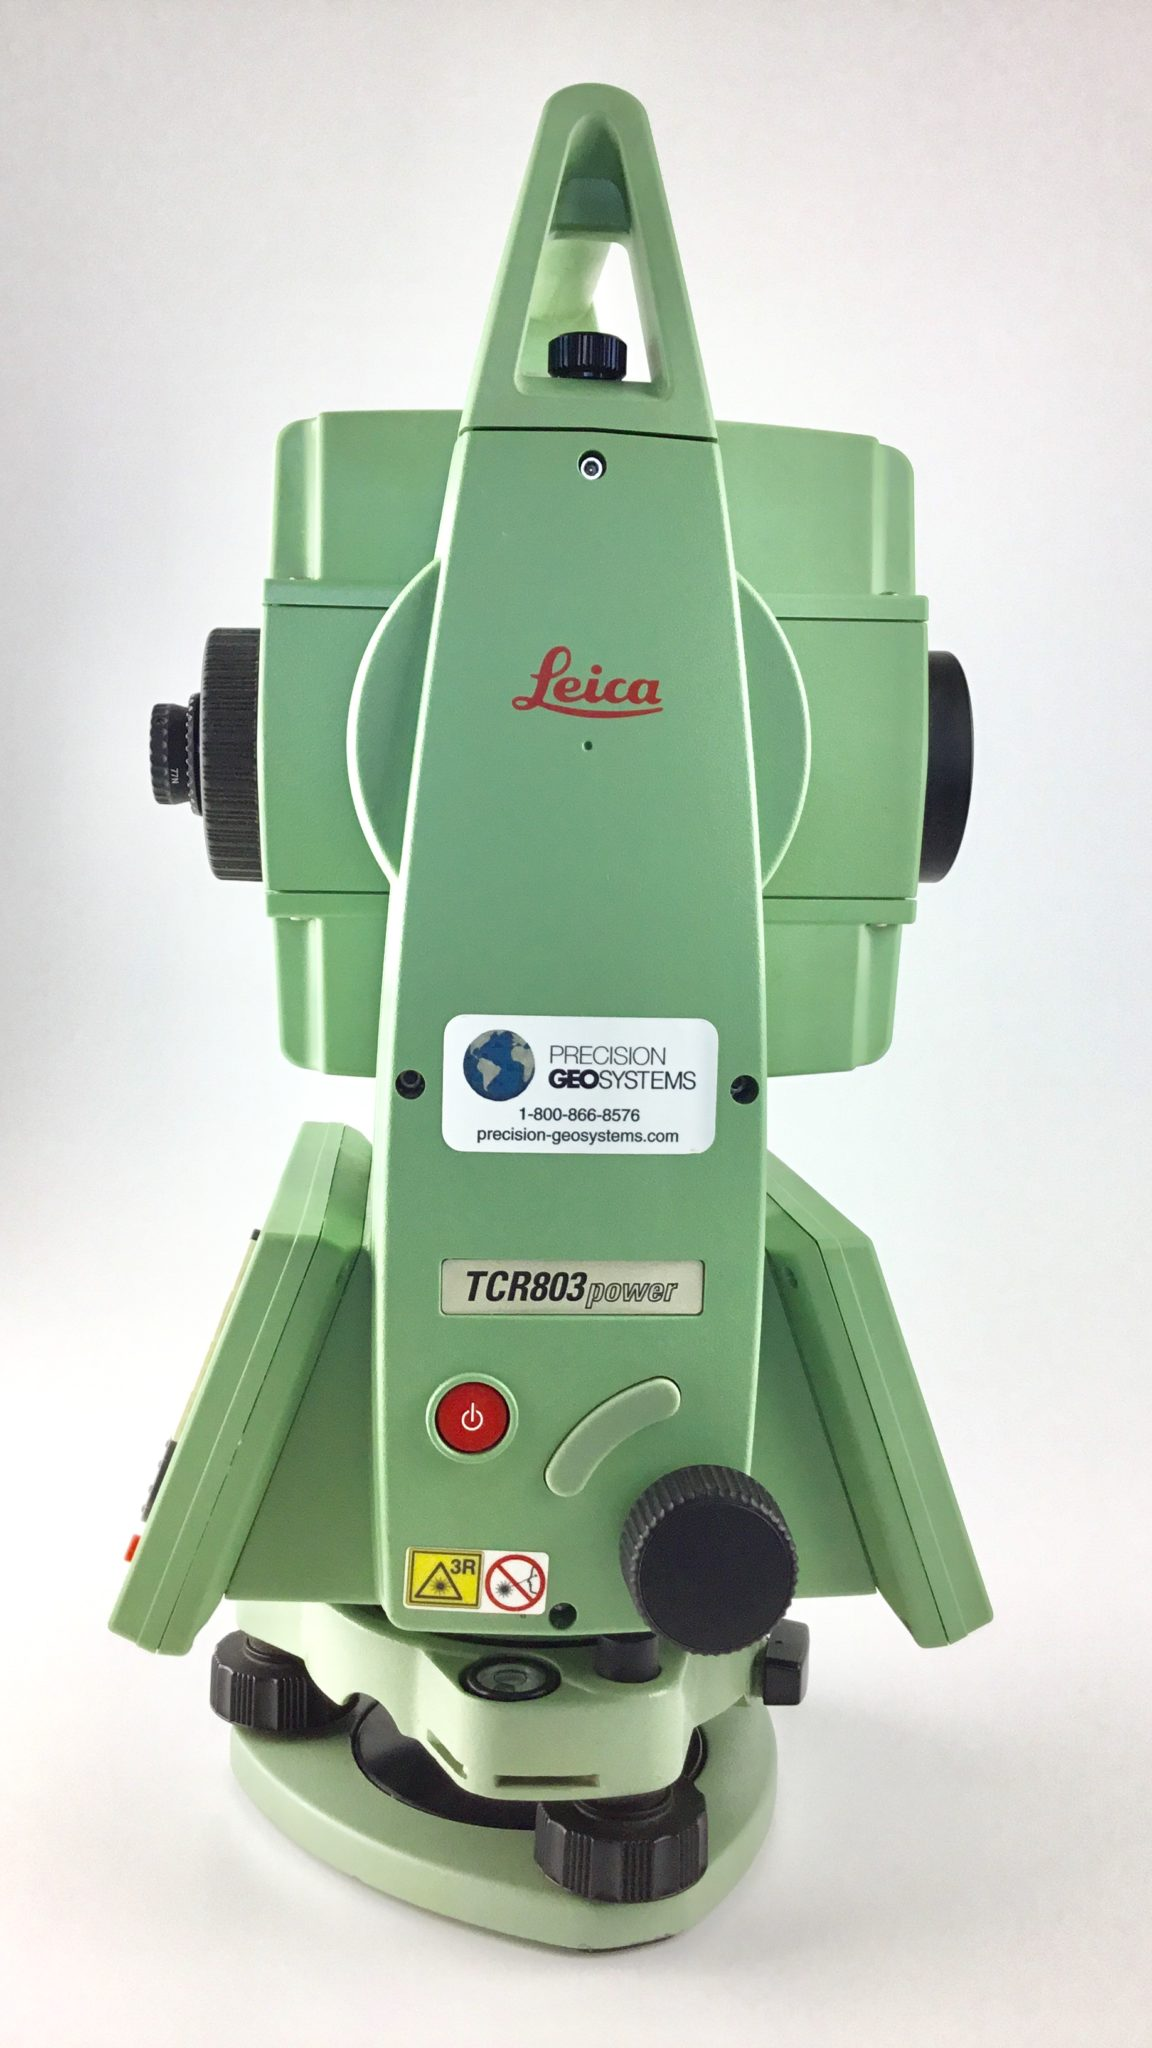 Leica Tcr 803power 3 U201d R100 Reflectorless Total Station